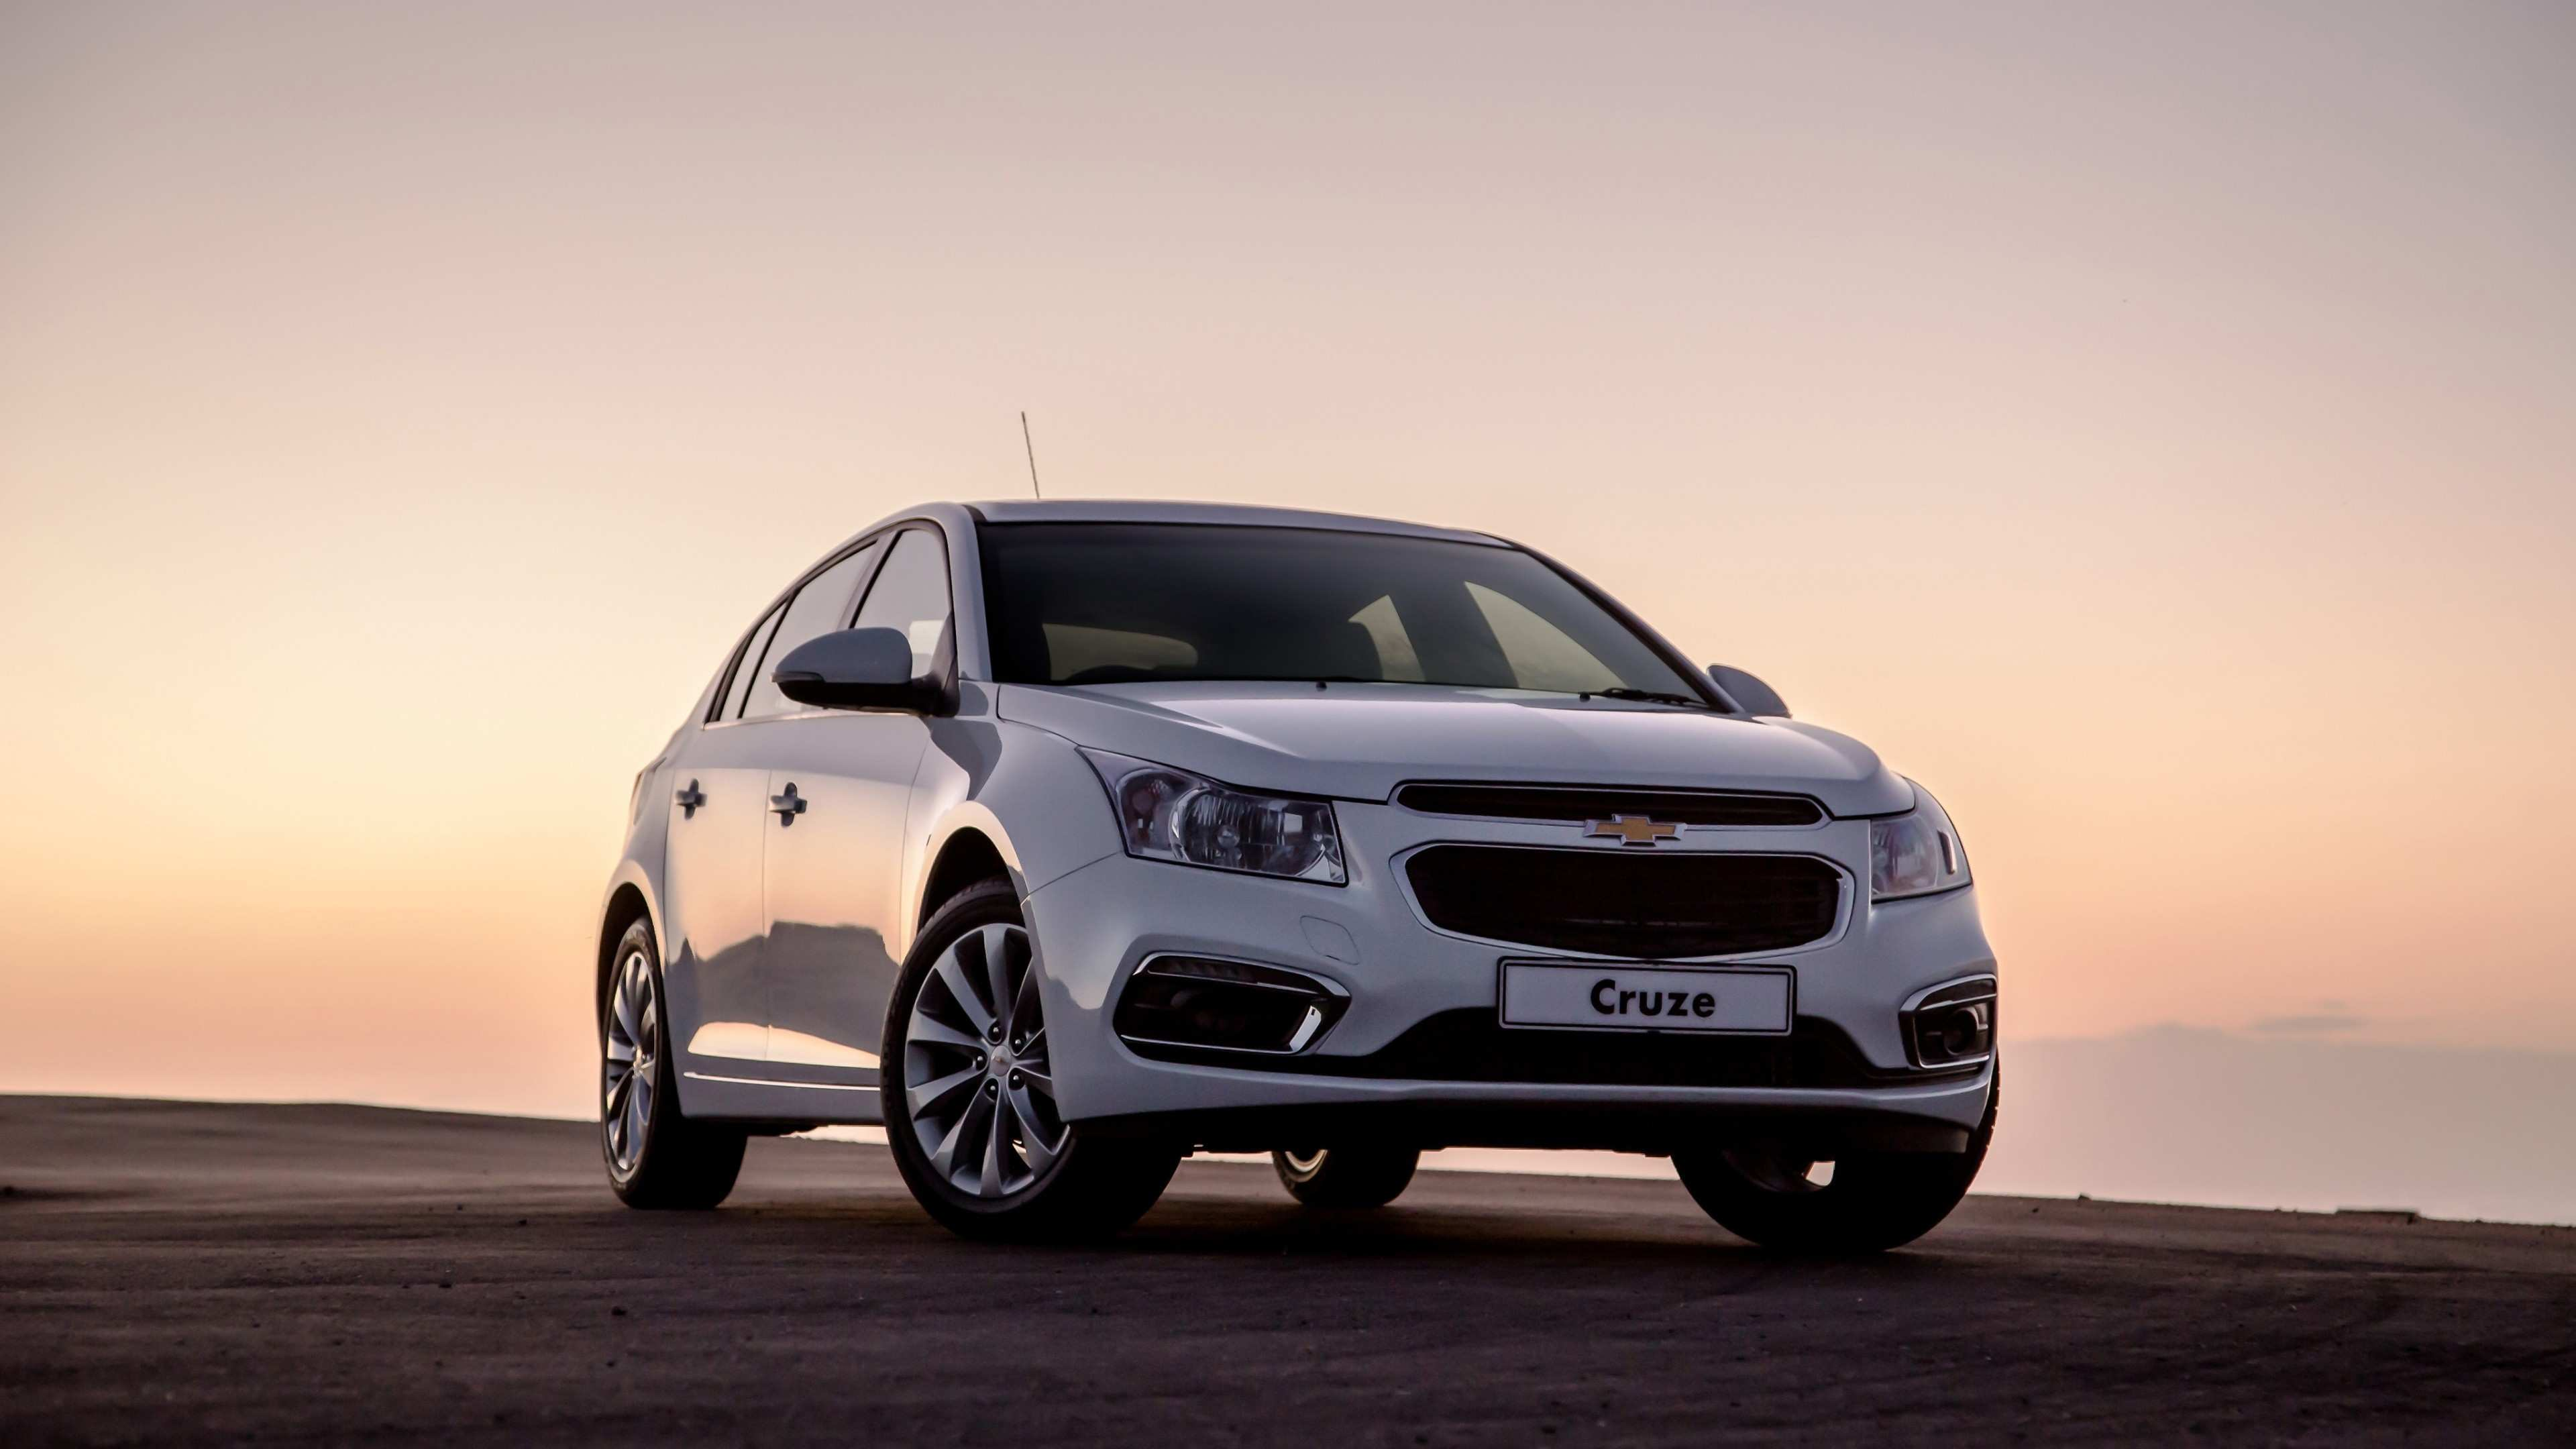 65 The Chevy Cruze Wallpapers Spesification with Chevy Cruze Wallpapers